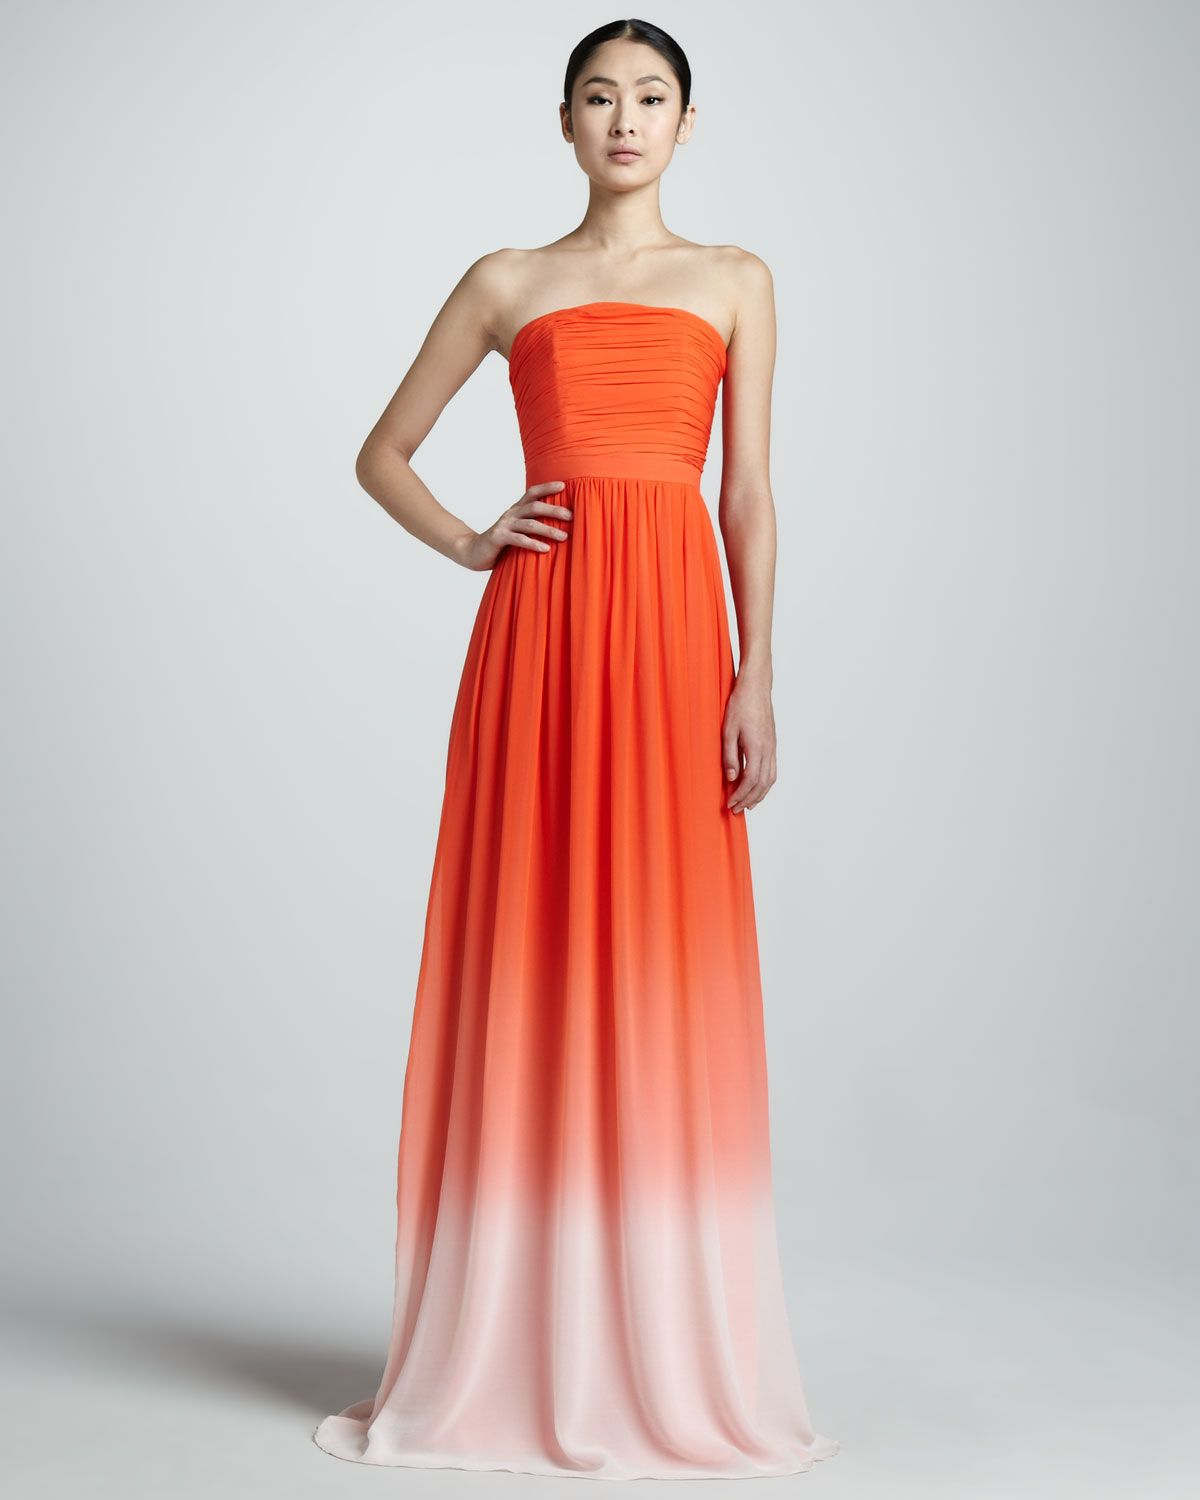 Neiman marcus dresses for weddings  Erin by Erin Fetherston Strapless Ombre Gown  Dresses  Pinterest